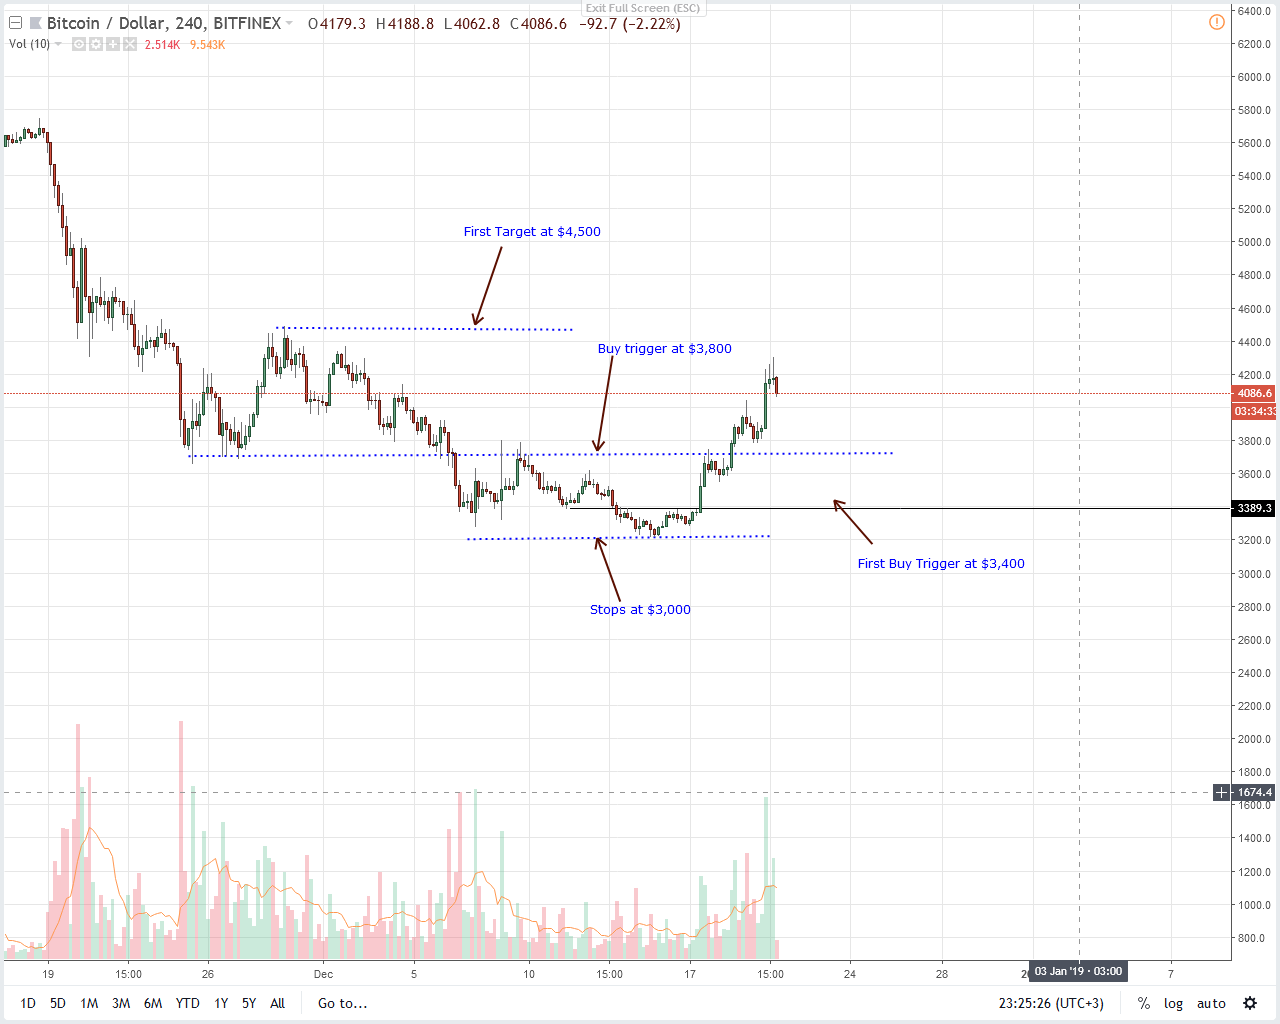 BTC/USD price